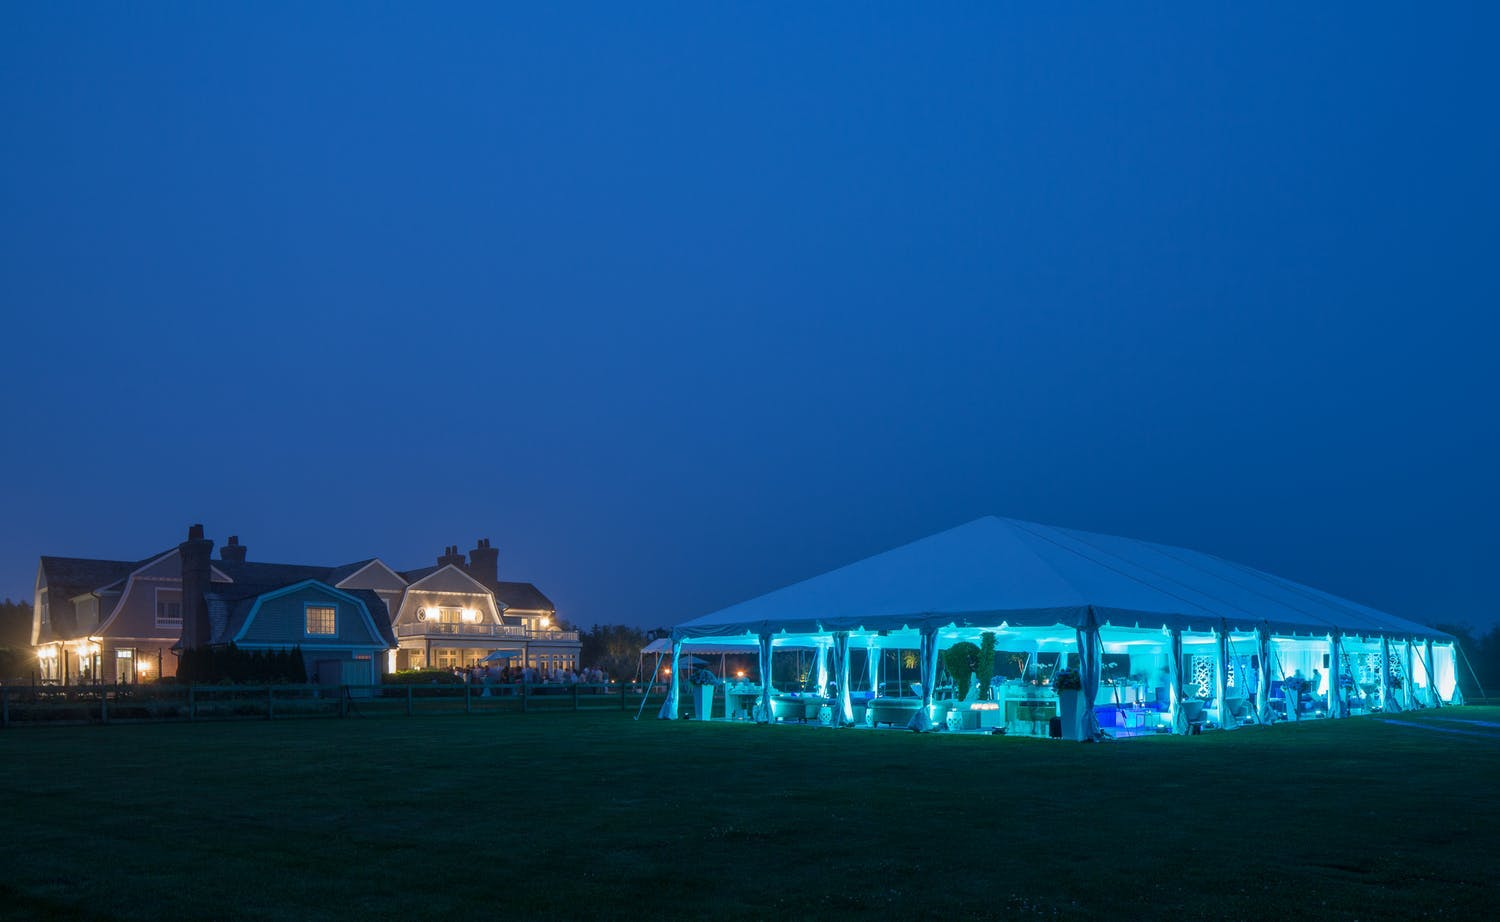 Tented 30th-wedding anniversary with blue uplighting at night | PartySlate